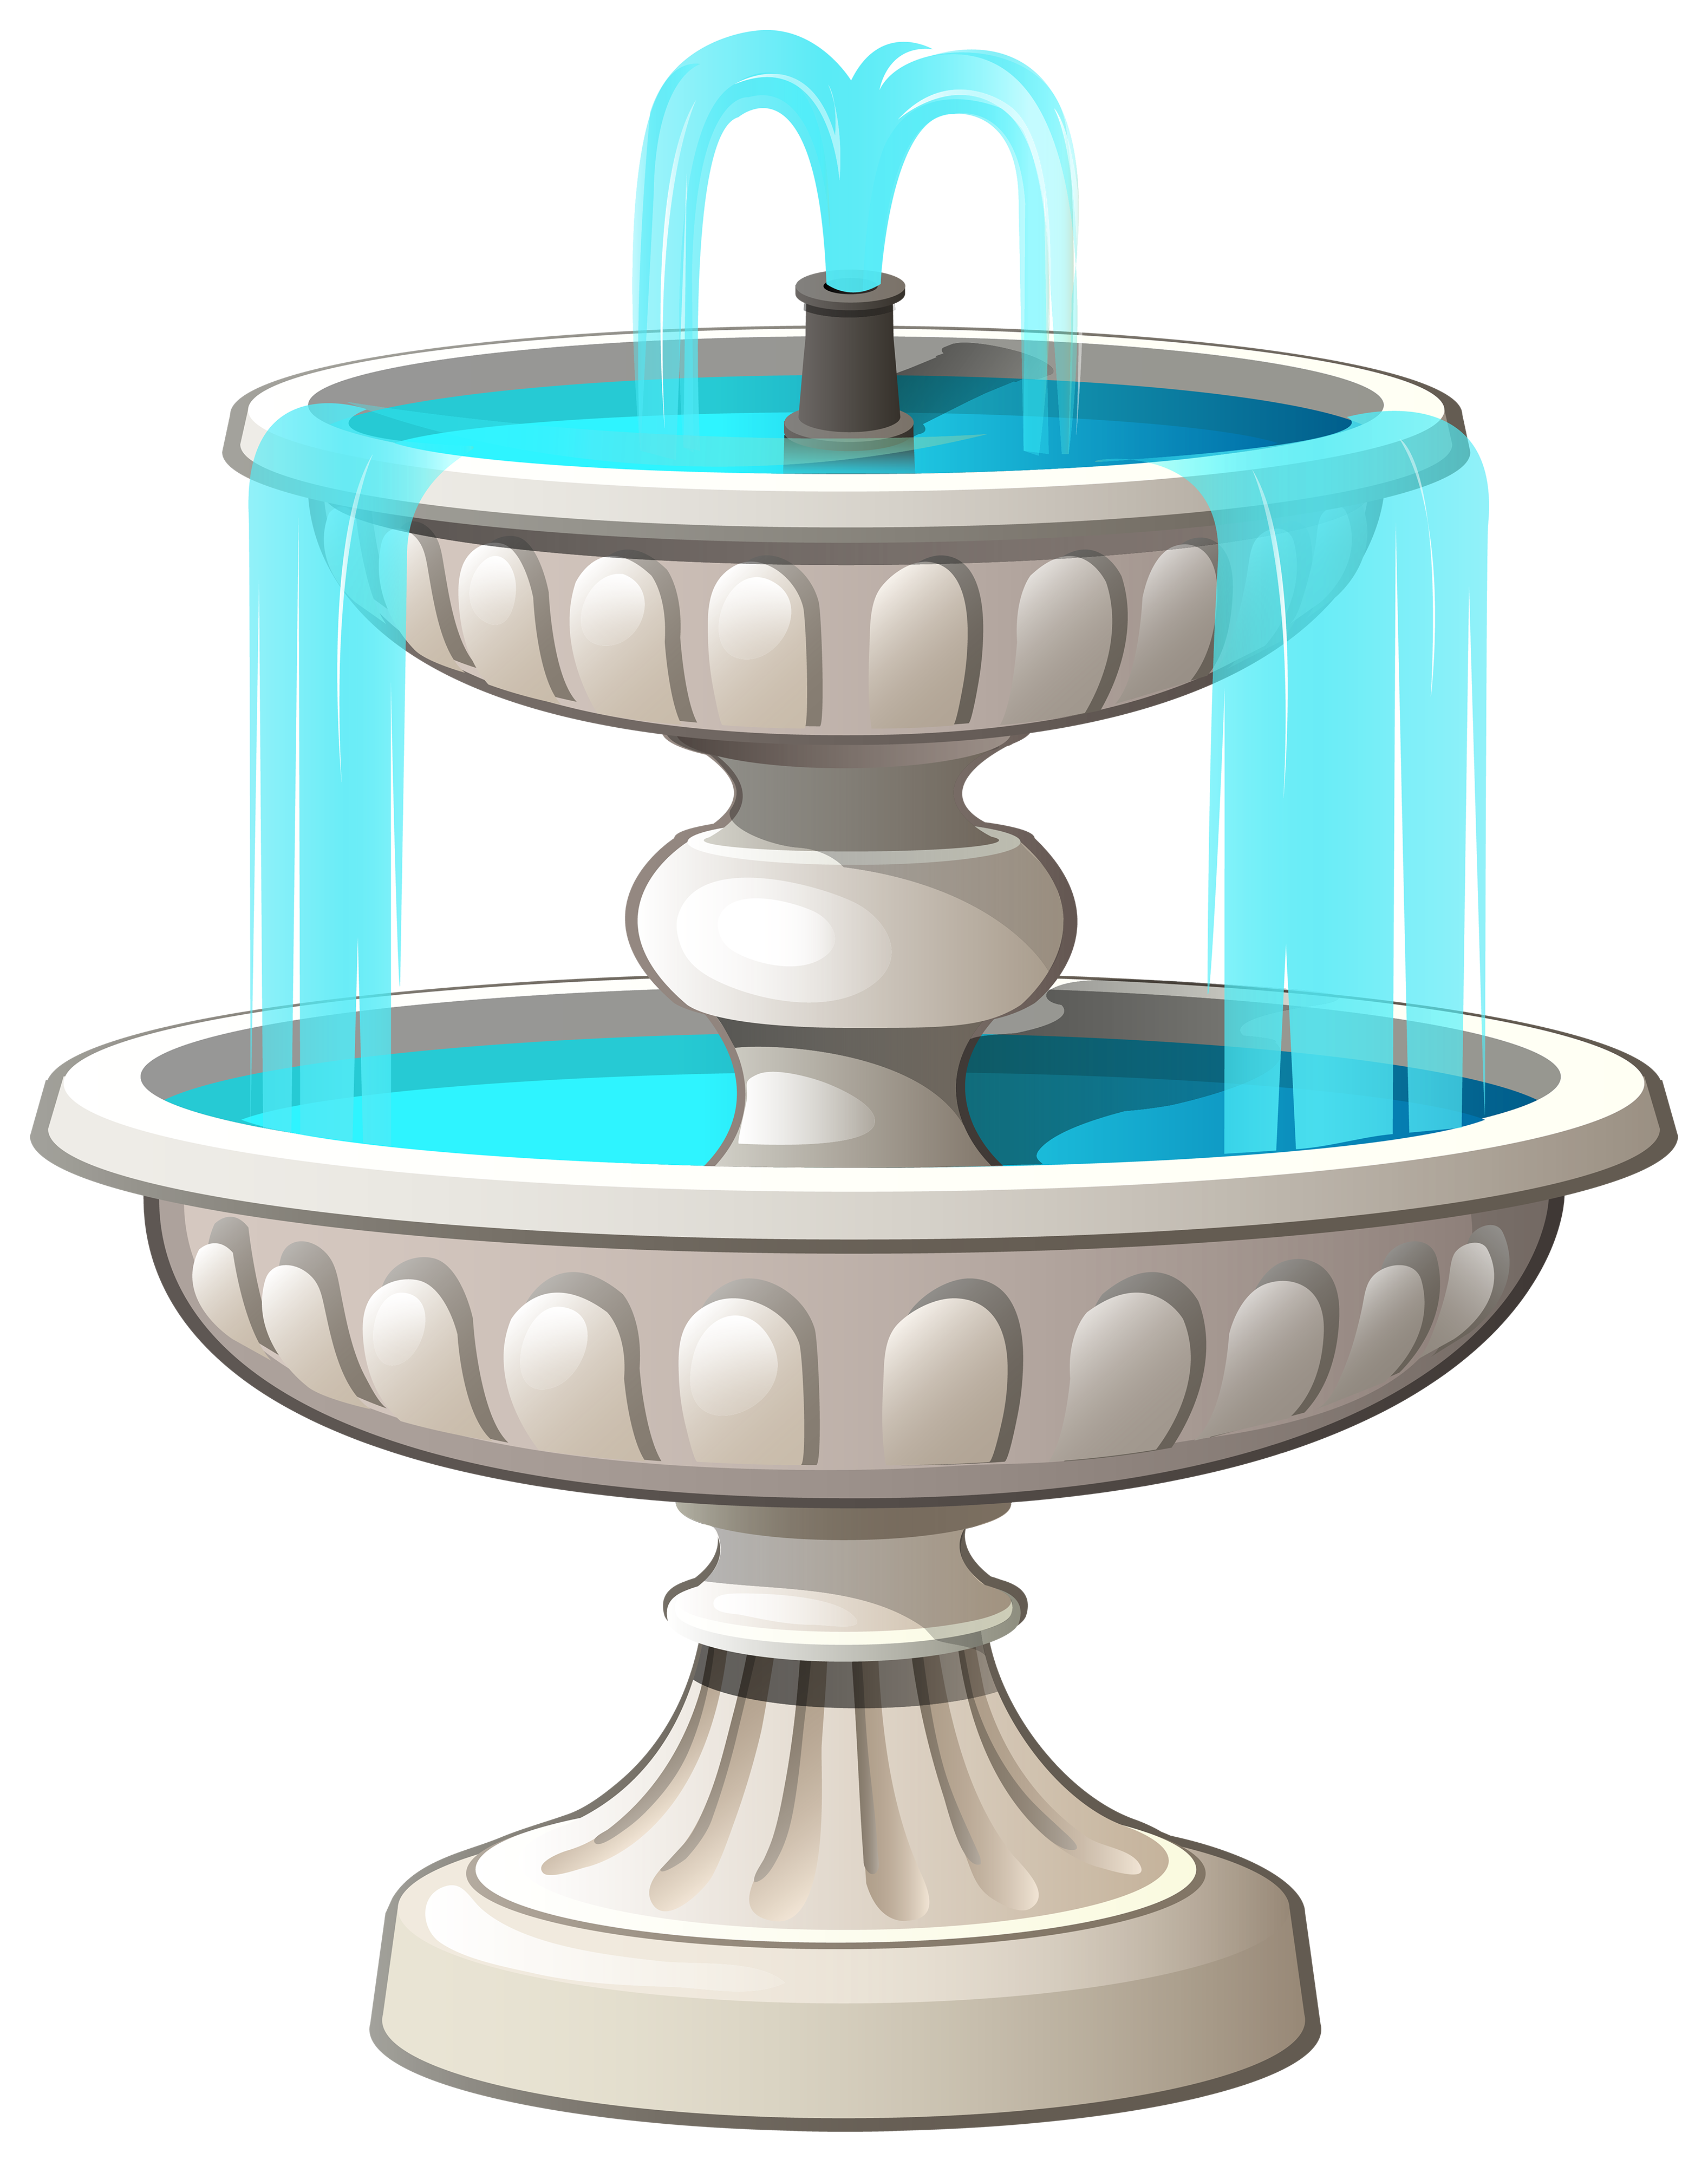 Fountain clipart. Png best web